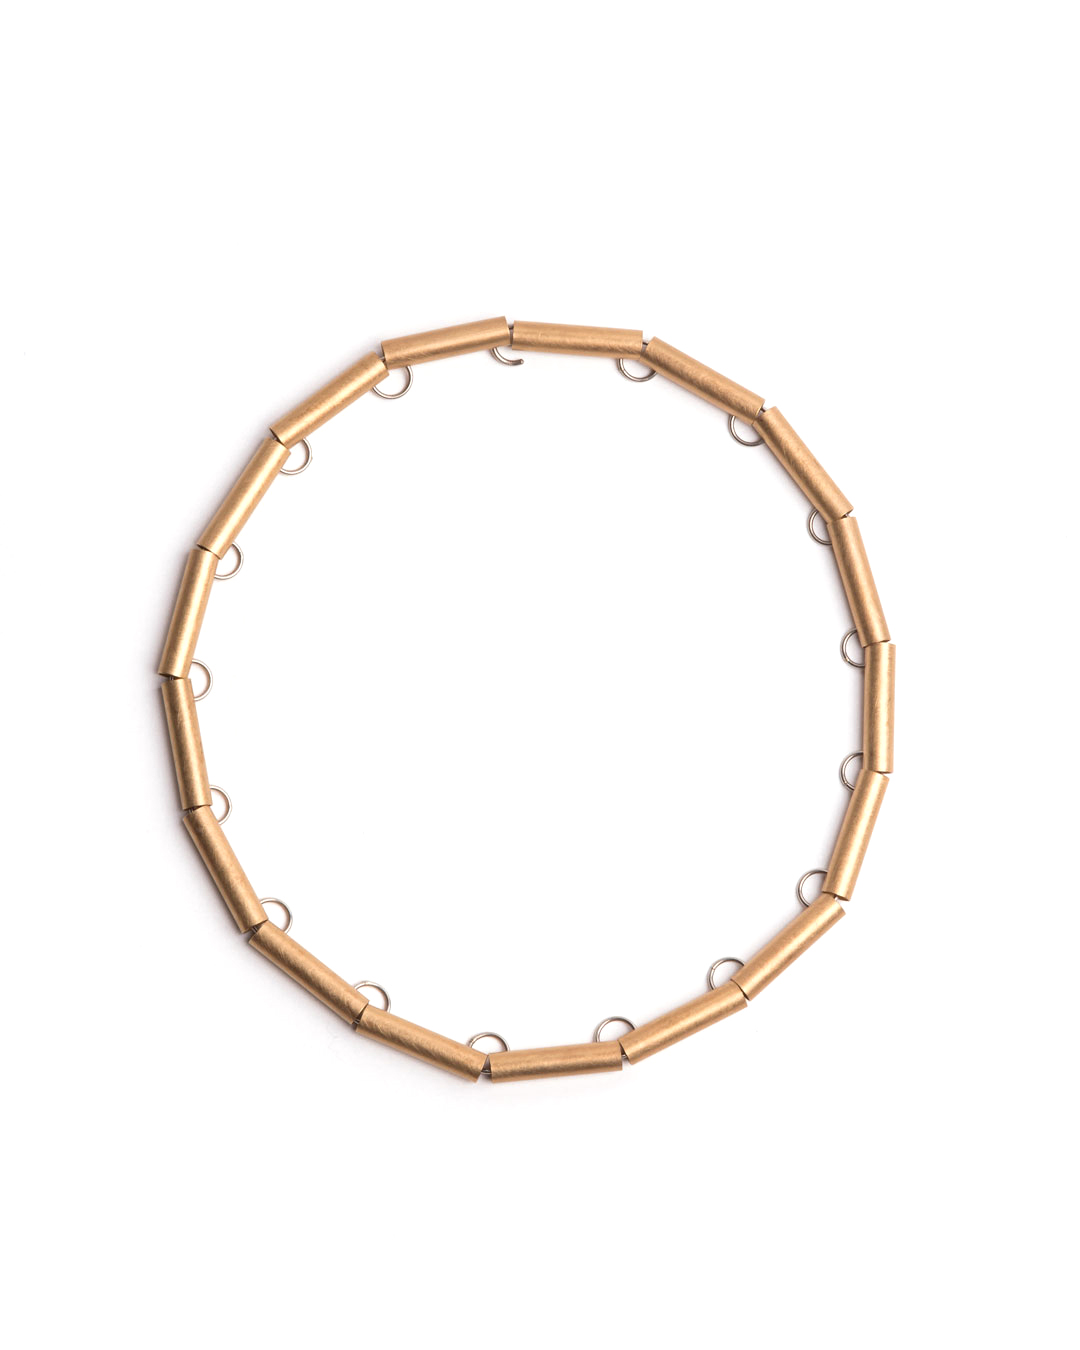 Herman Hermsen, Tube Chain, 1998, necklace; yellow gold, white gold, 435 x 8 x 6 mm, €7875